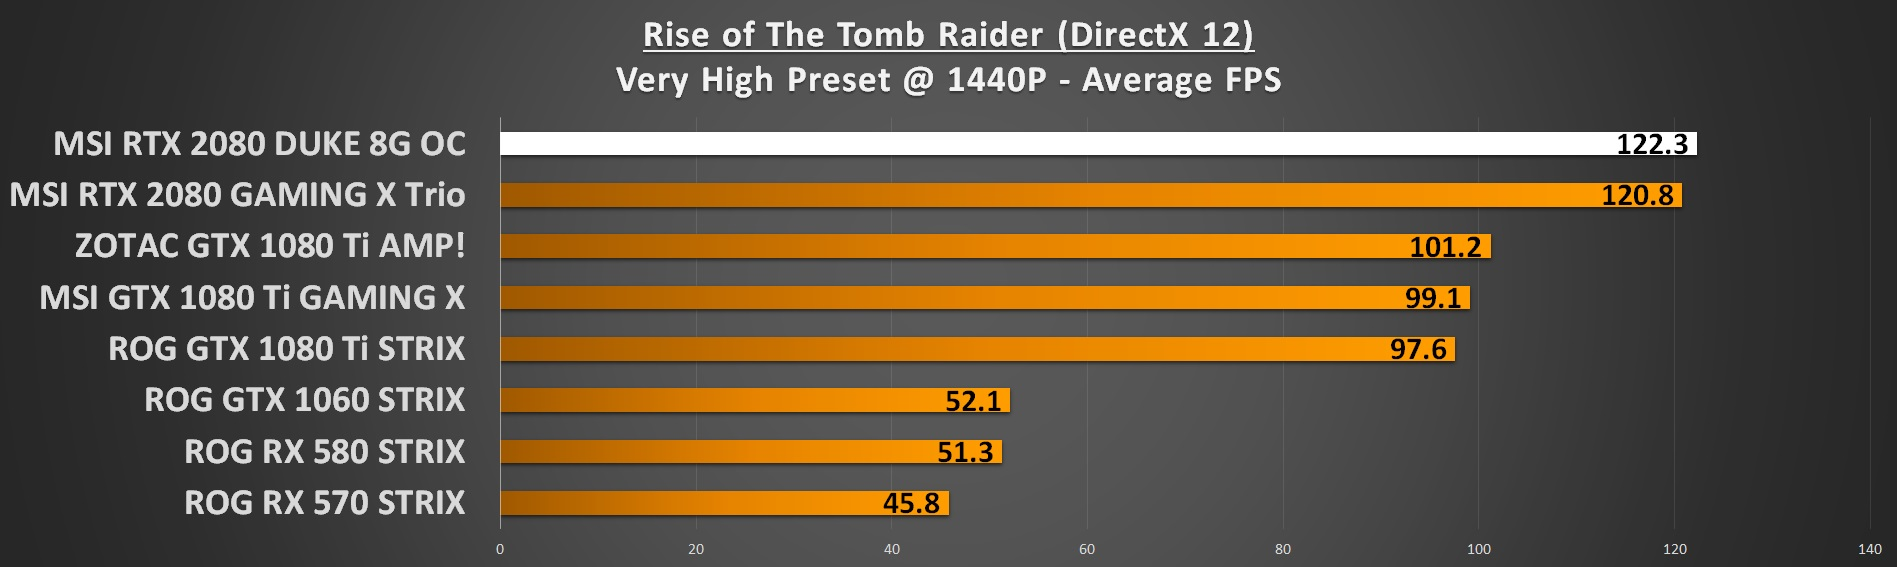 Rise of the Tomb Raider 1440p